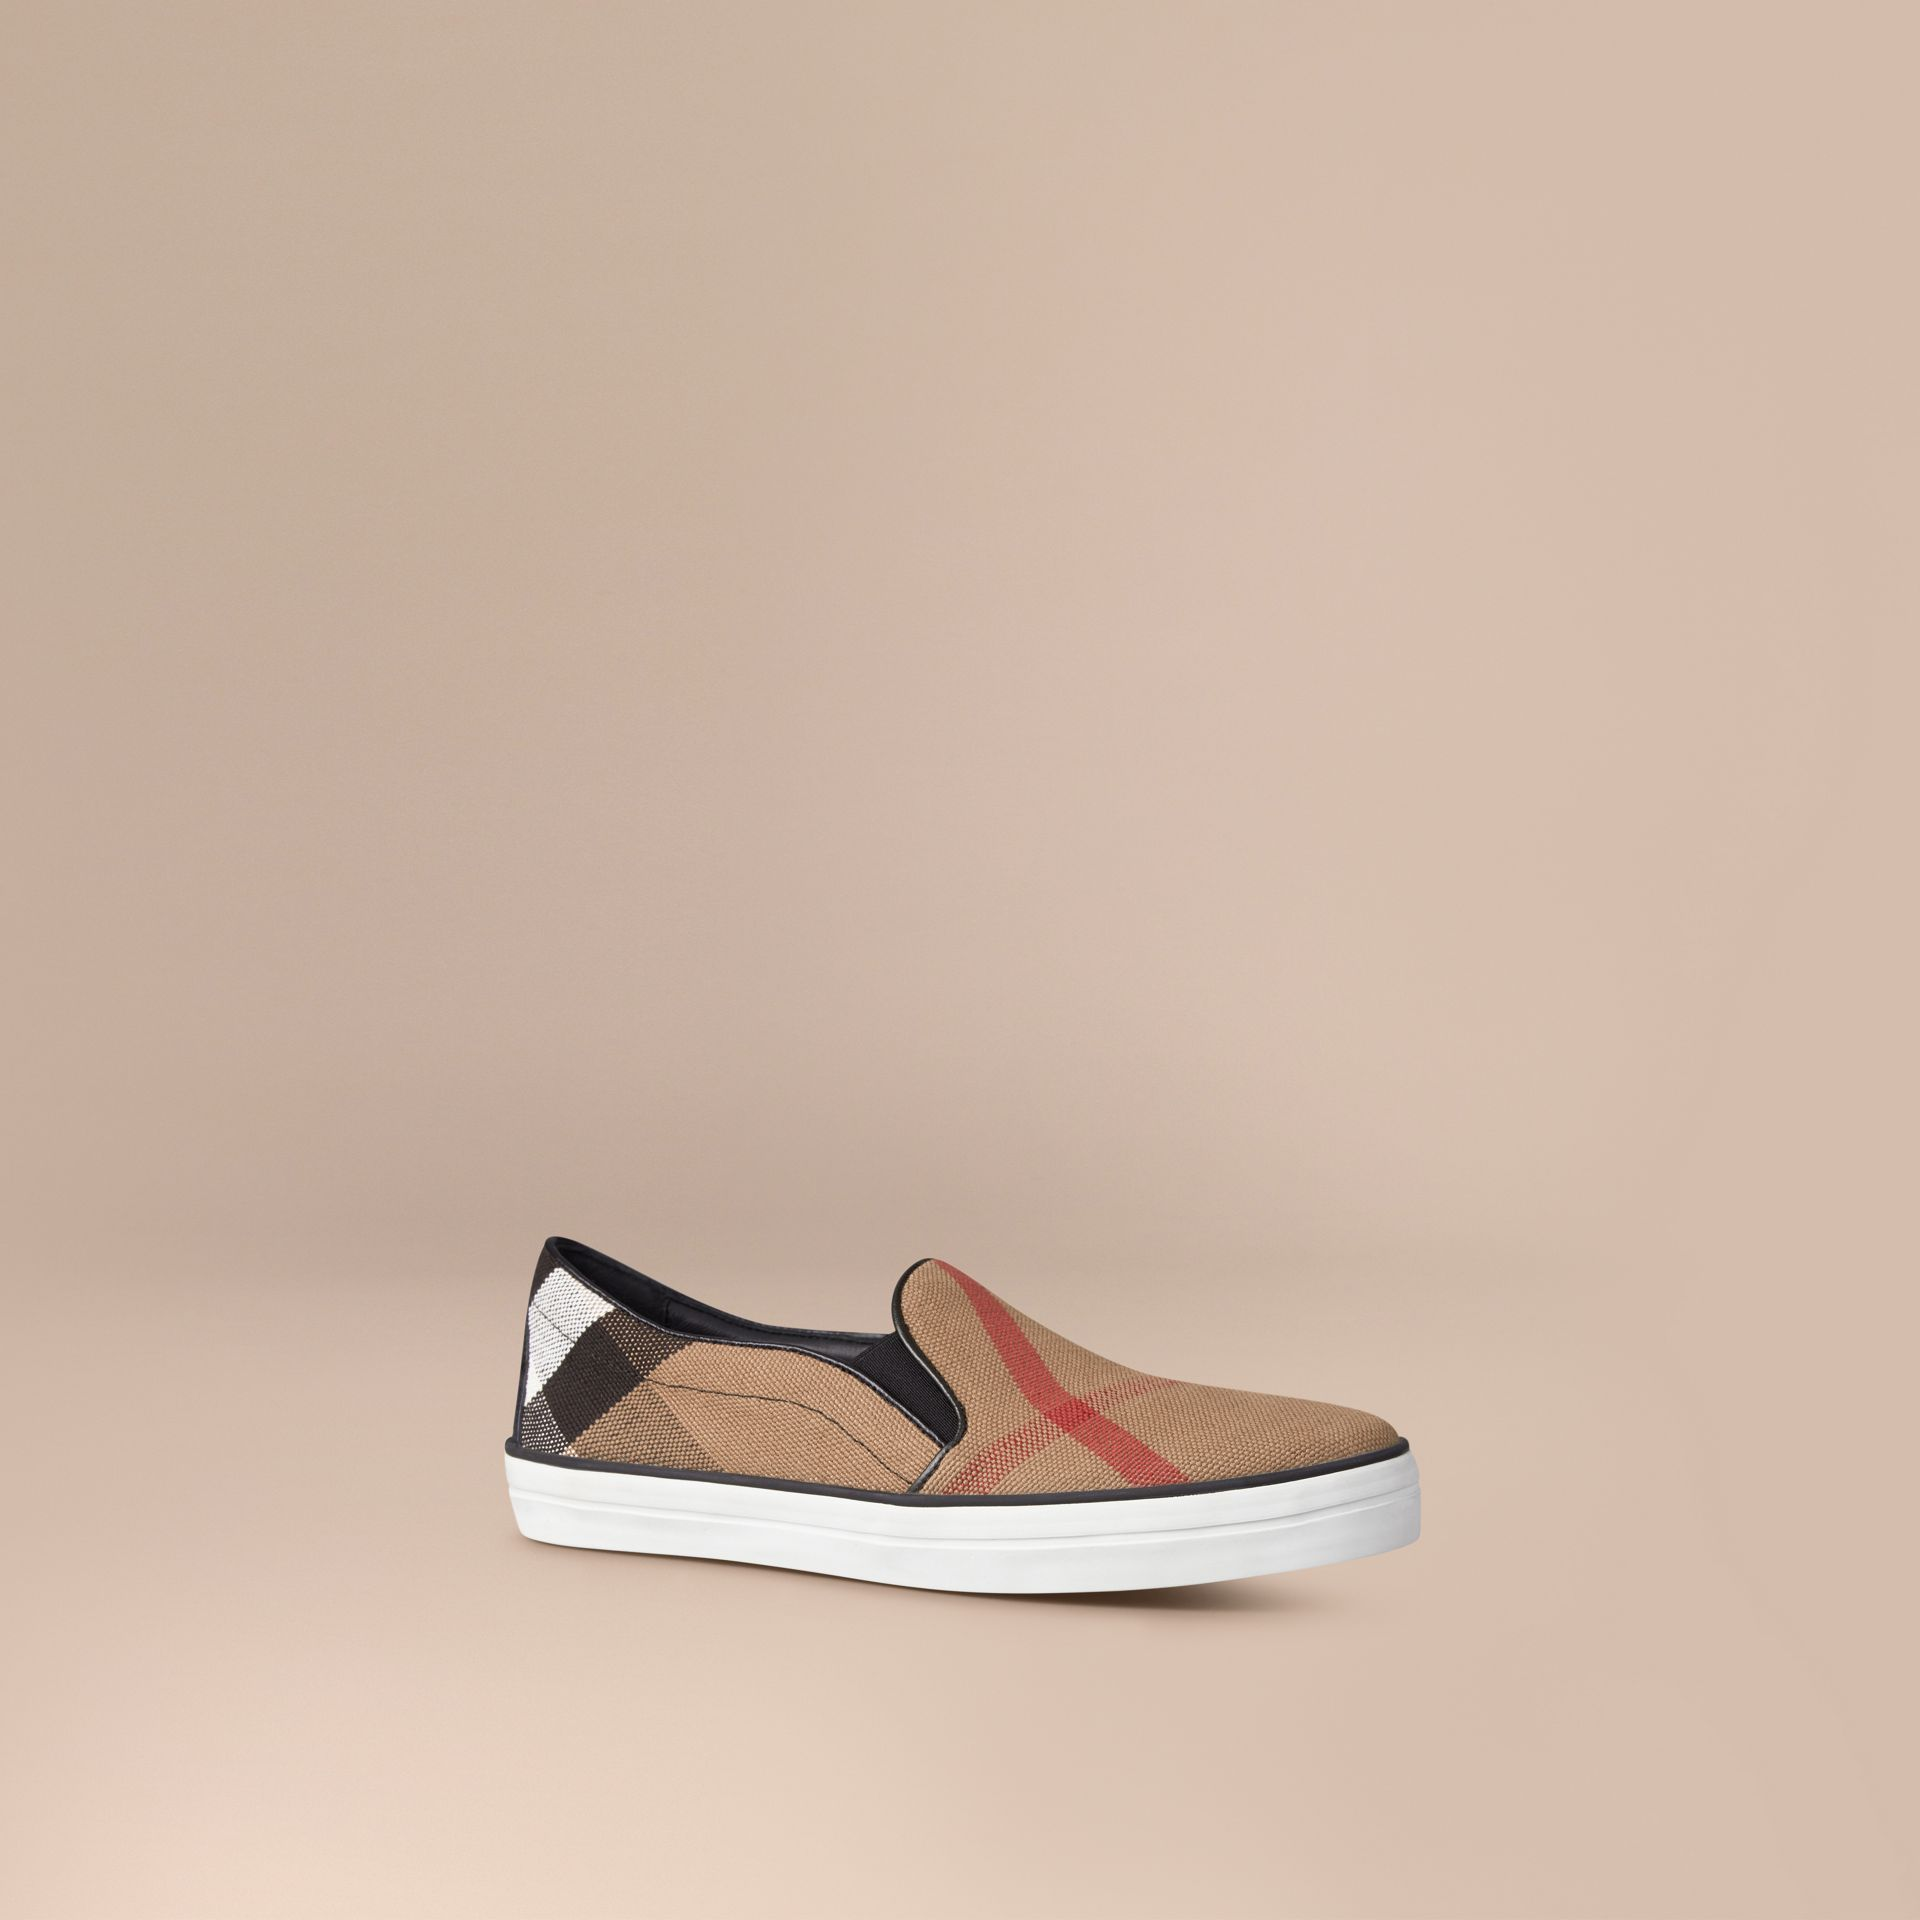 Canvas Check Slip-on Trainers in Black - Women | Burberry - gallery image 1